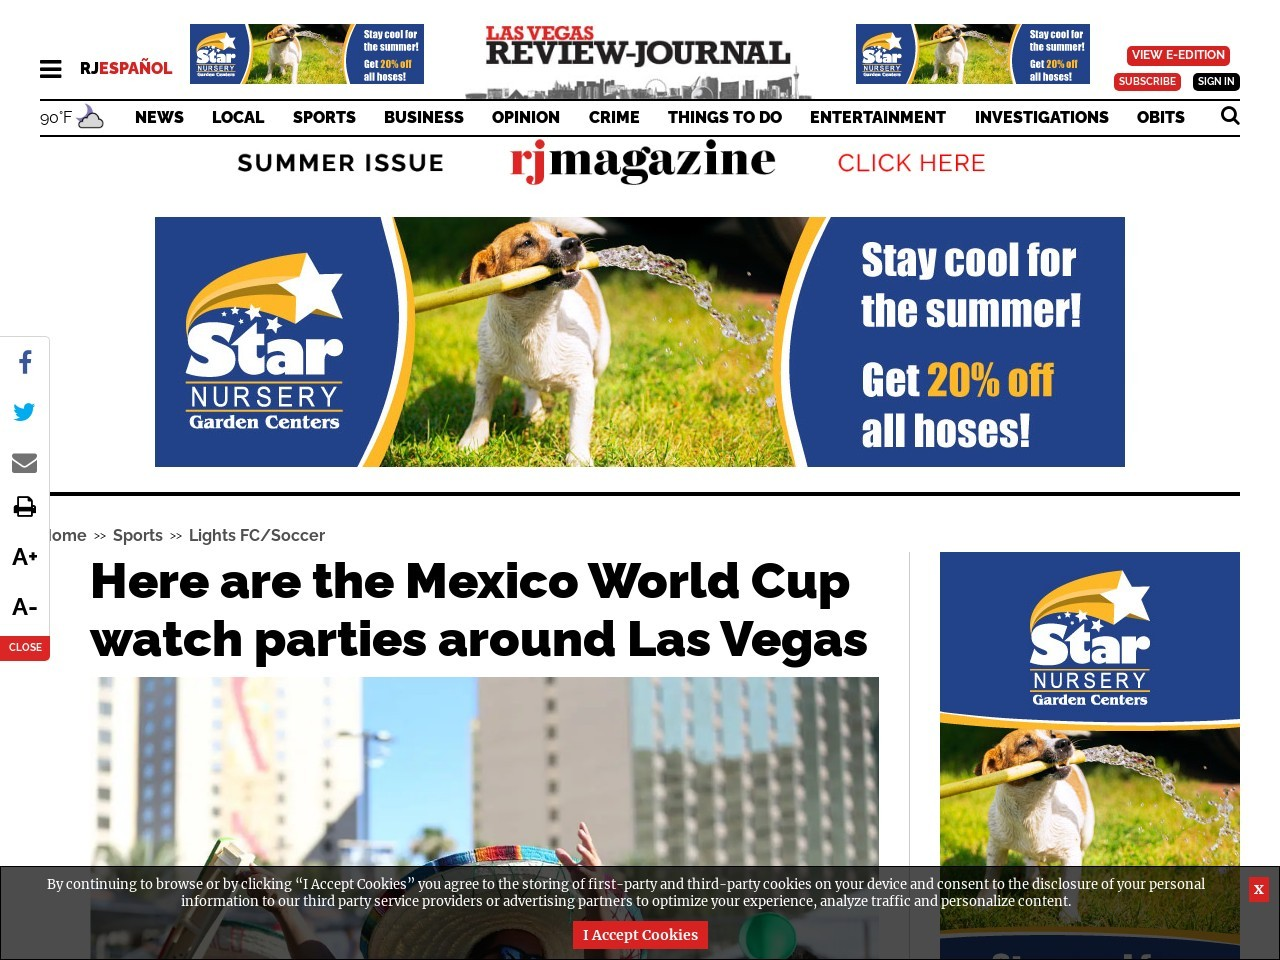 Here are the Mexico World Cup watch parties around Las Vegas